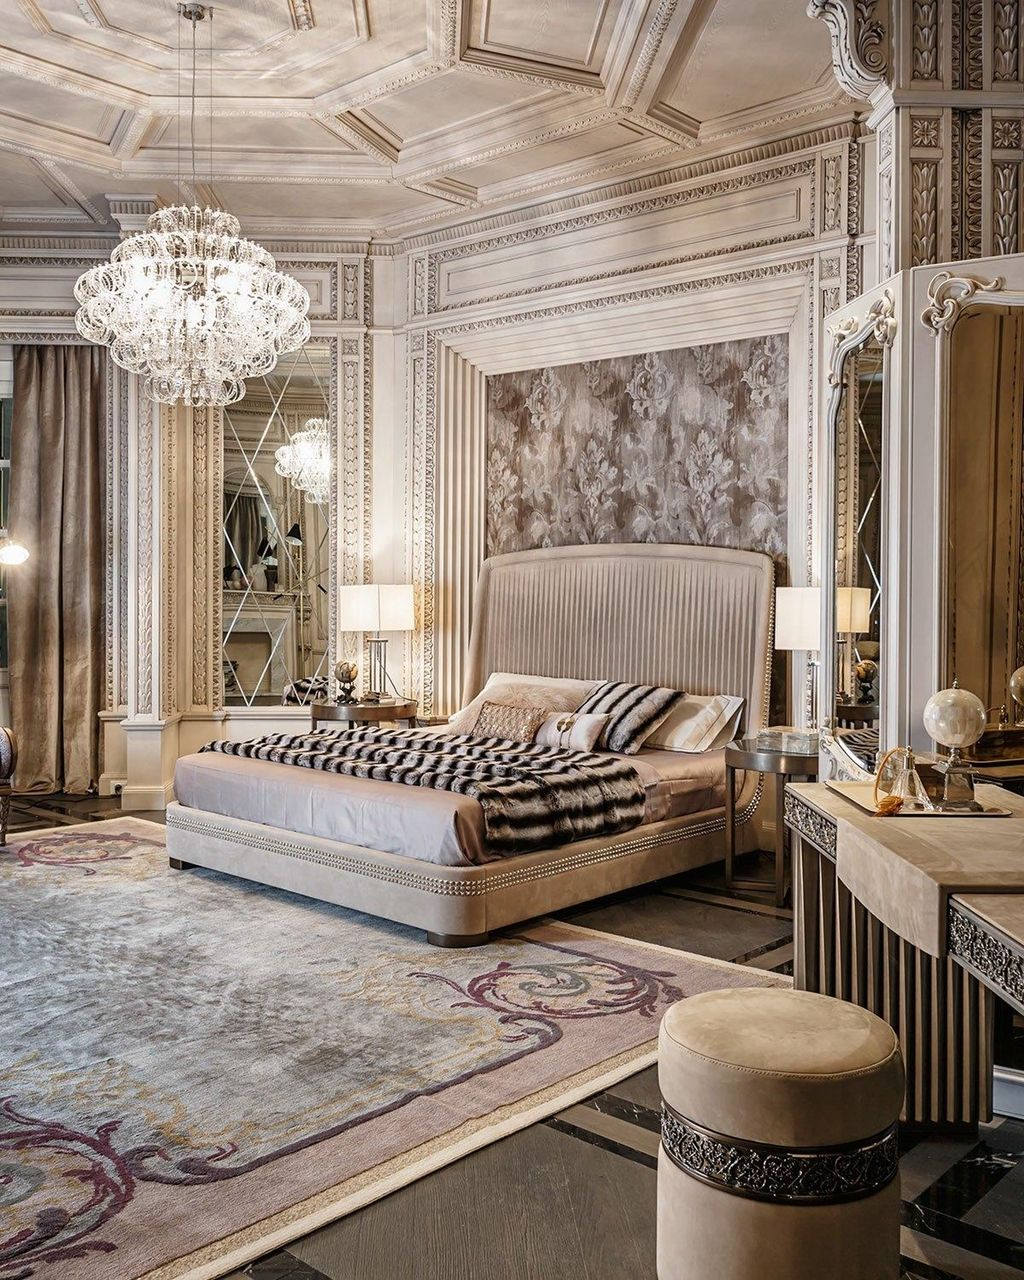 neoclassical meets art deco (with images) | luxury bedroom